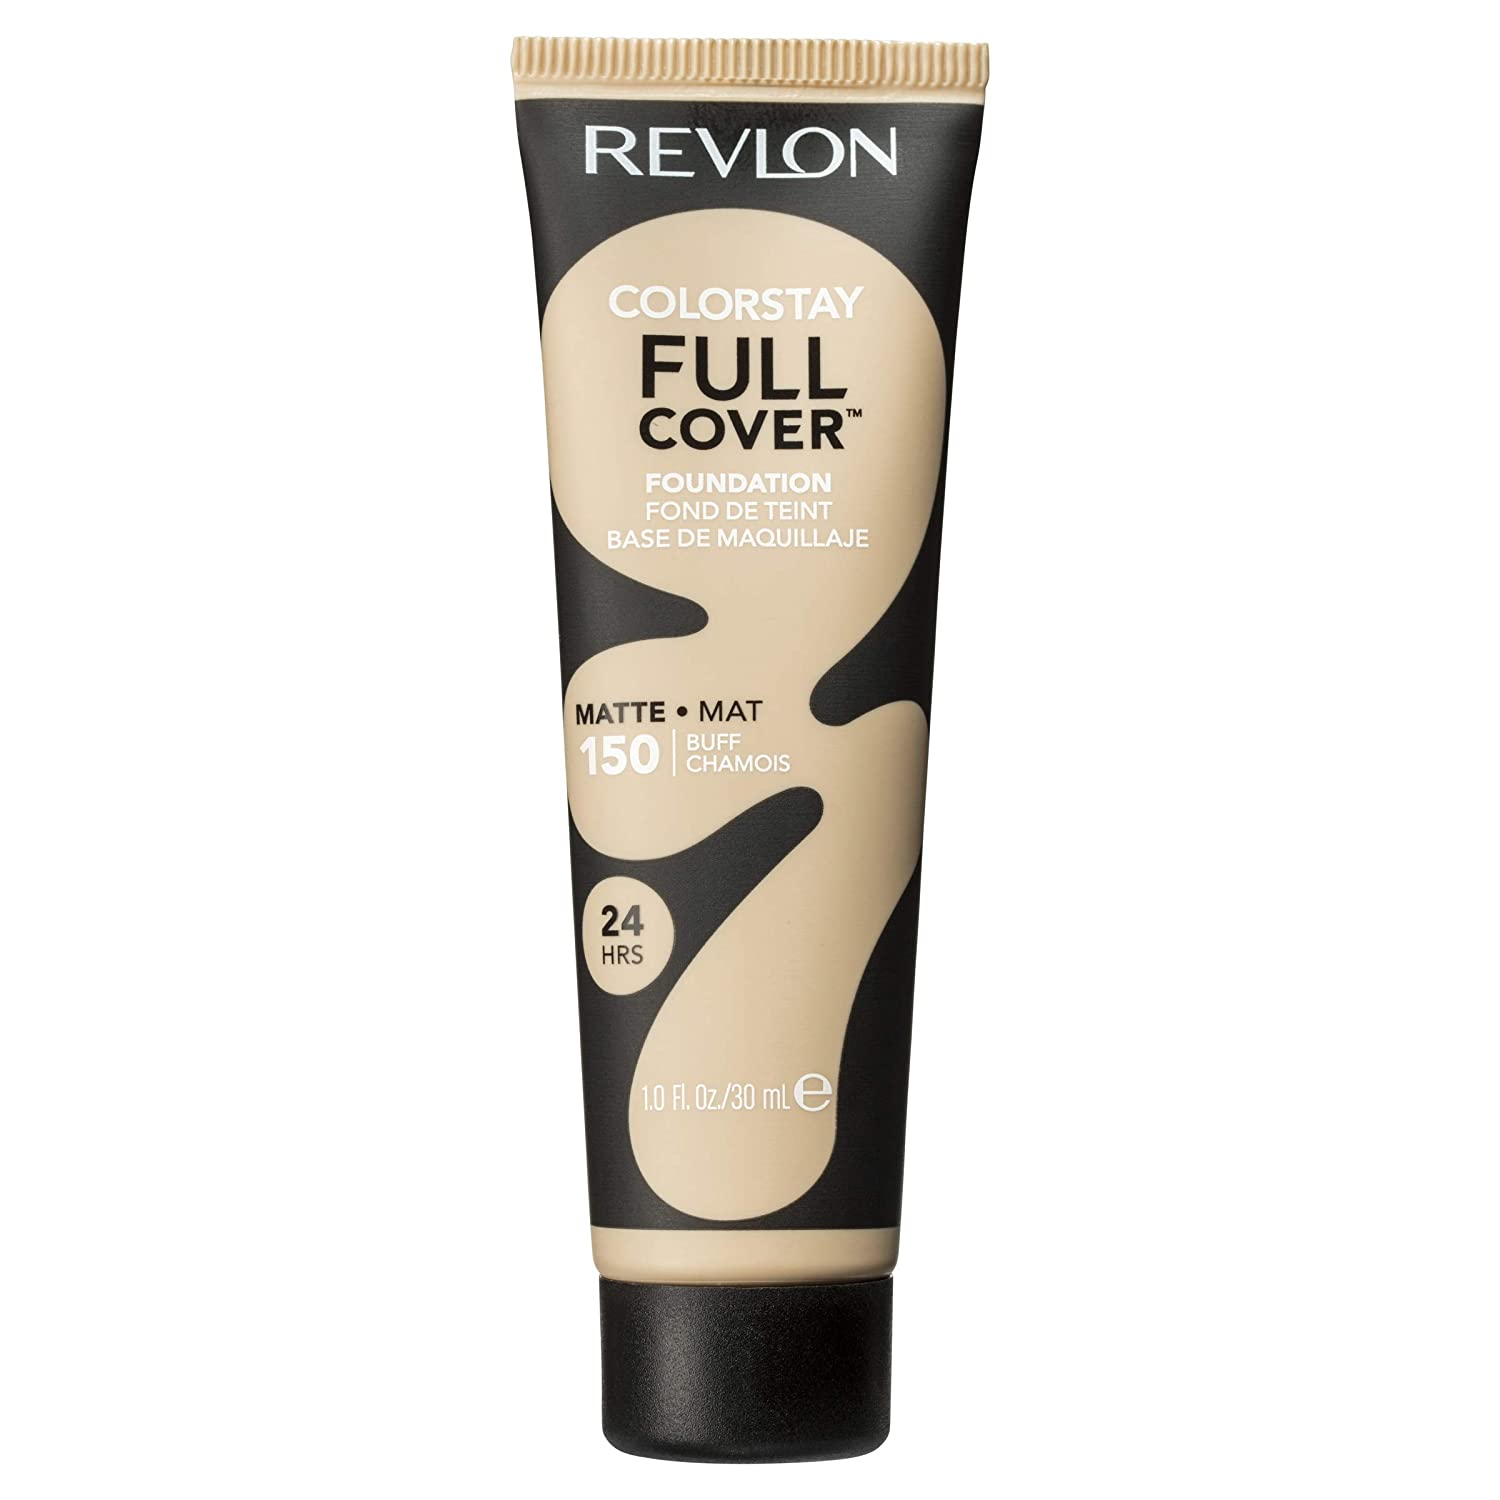 Revlon Color stay full cover foundation, buff, full coverage, matte finish, 30ml 1335-02